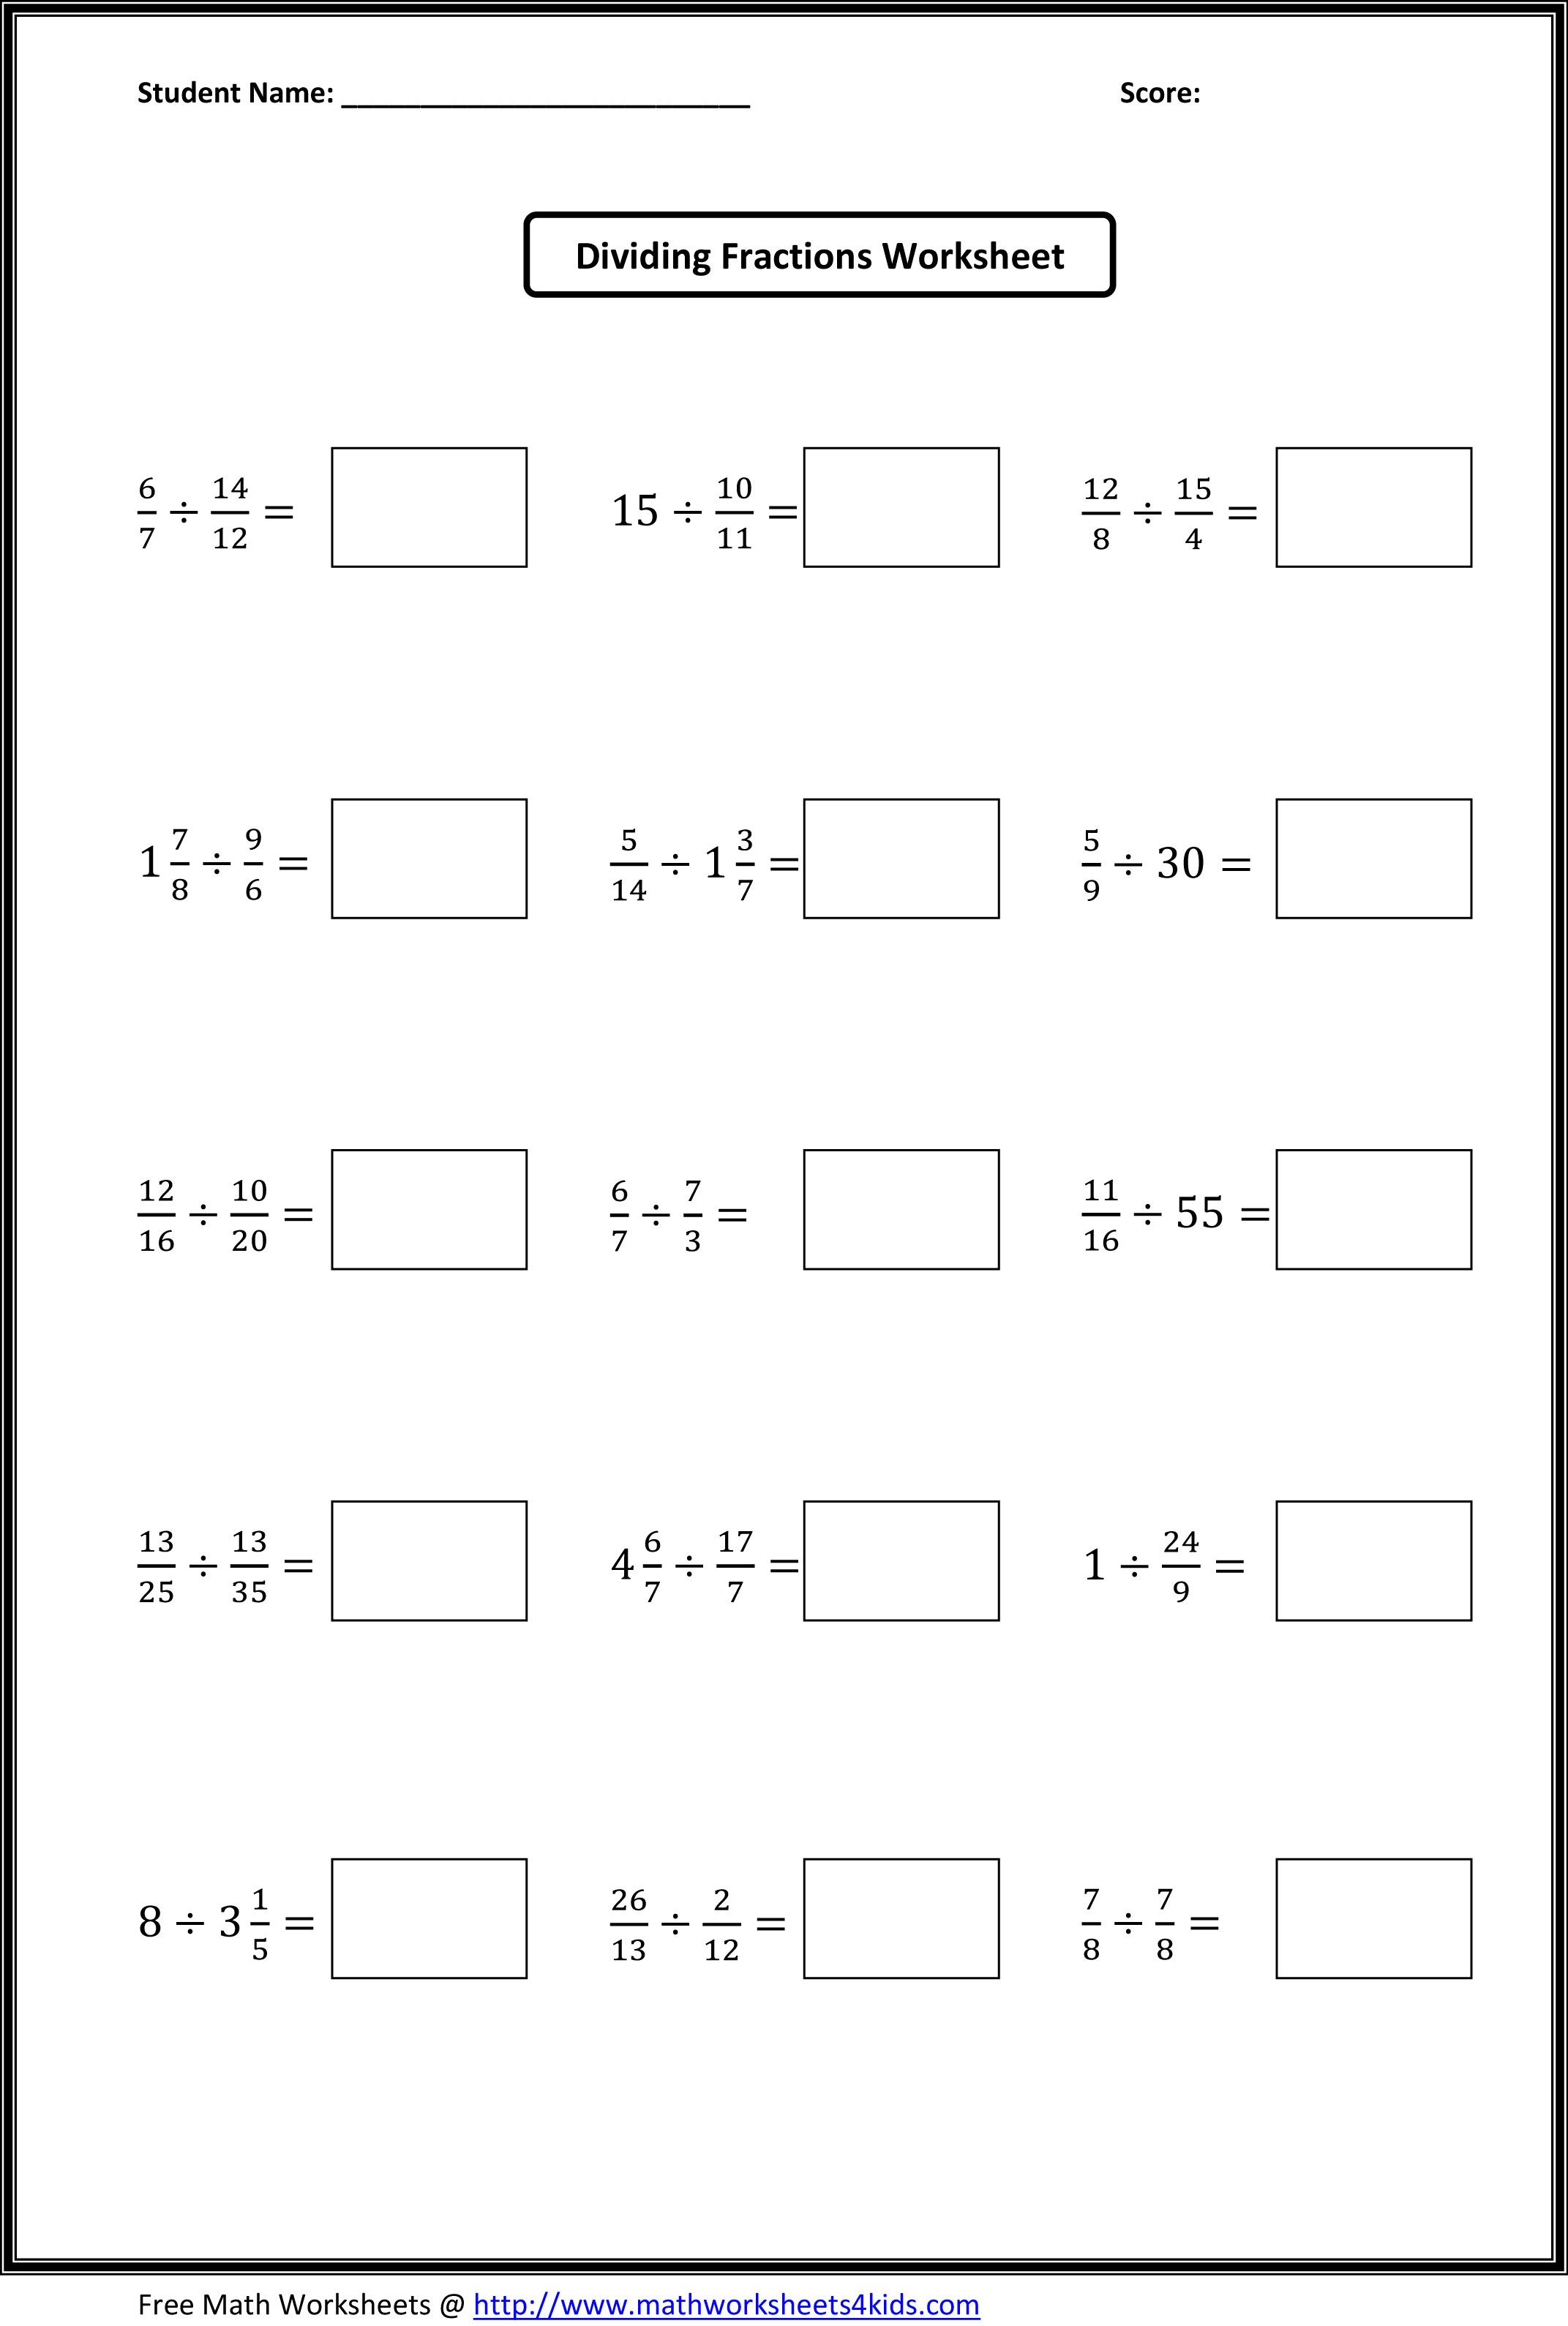 Dividing Fractions Worksheets With Images